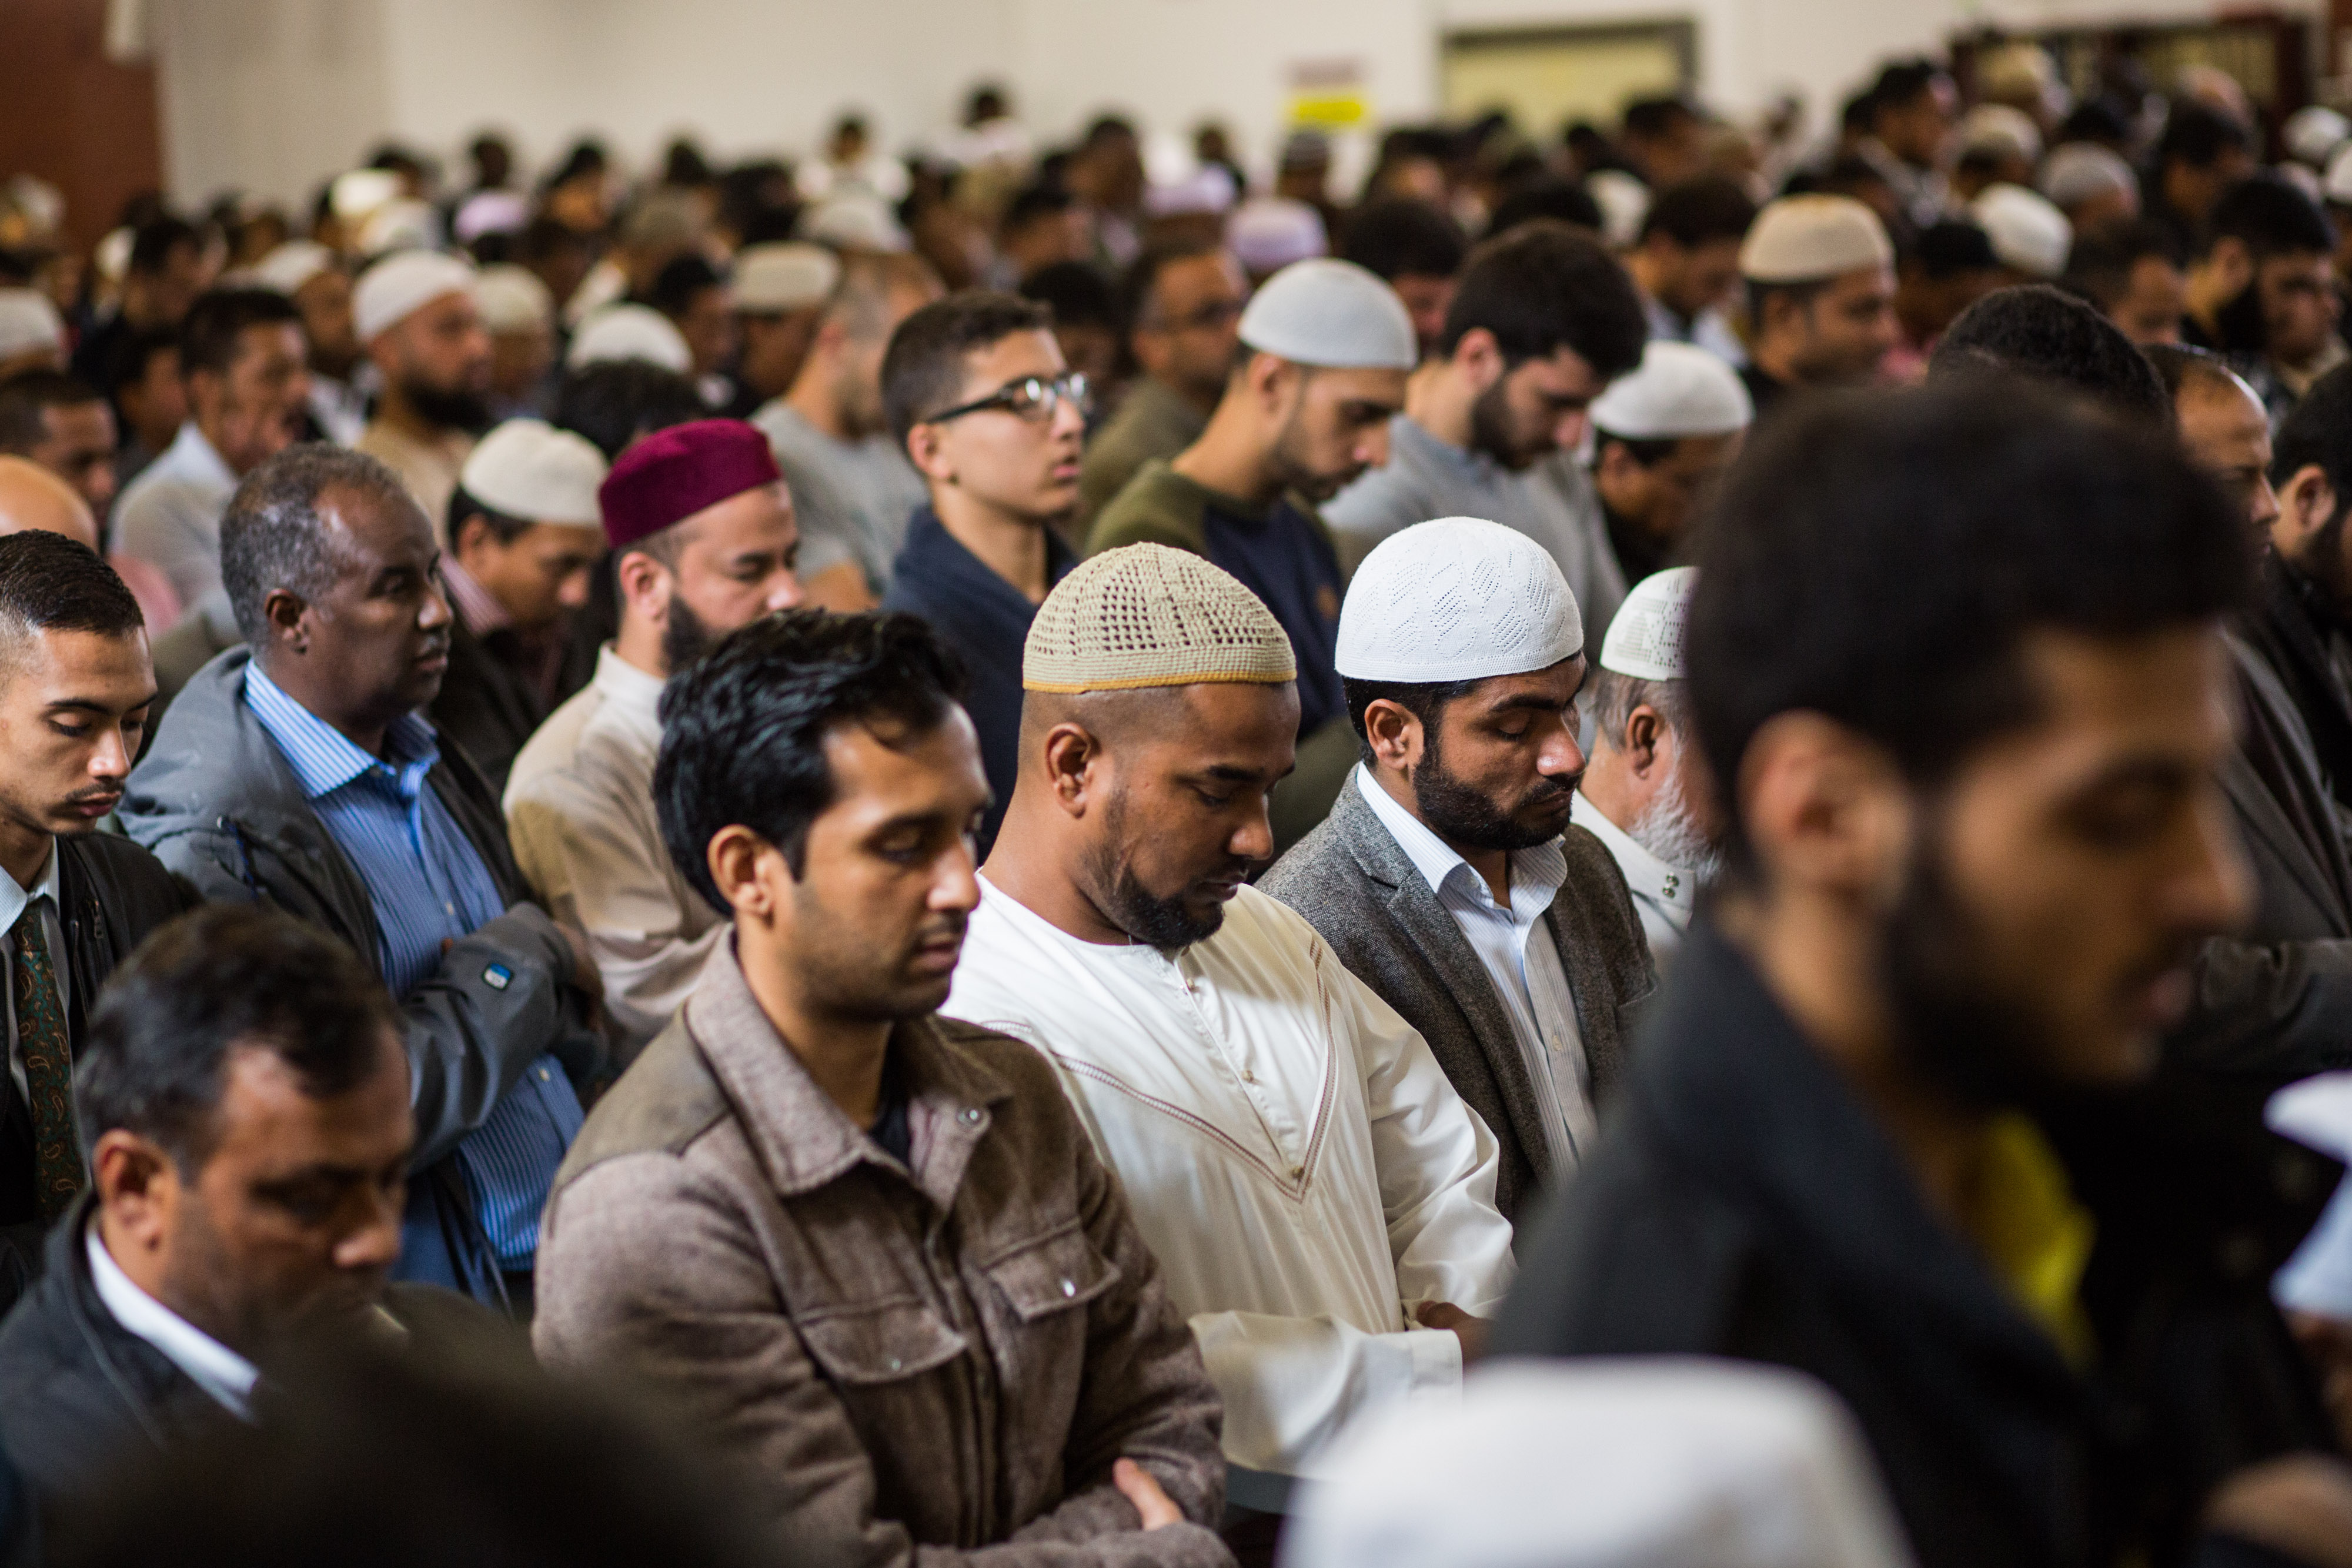 Men attend the first Friday prayers of the Islamic holy month of Ramadan at the East London Mosque on June 19, 2015 in London, England.